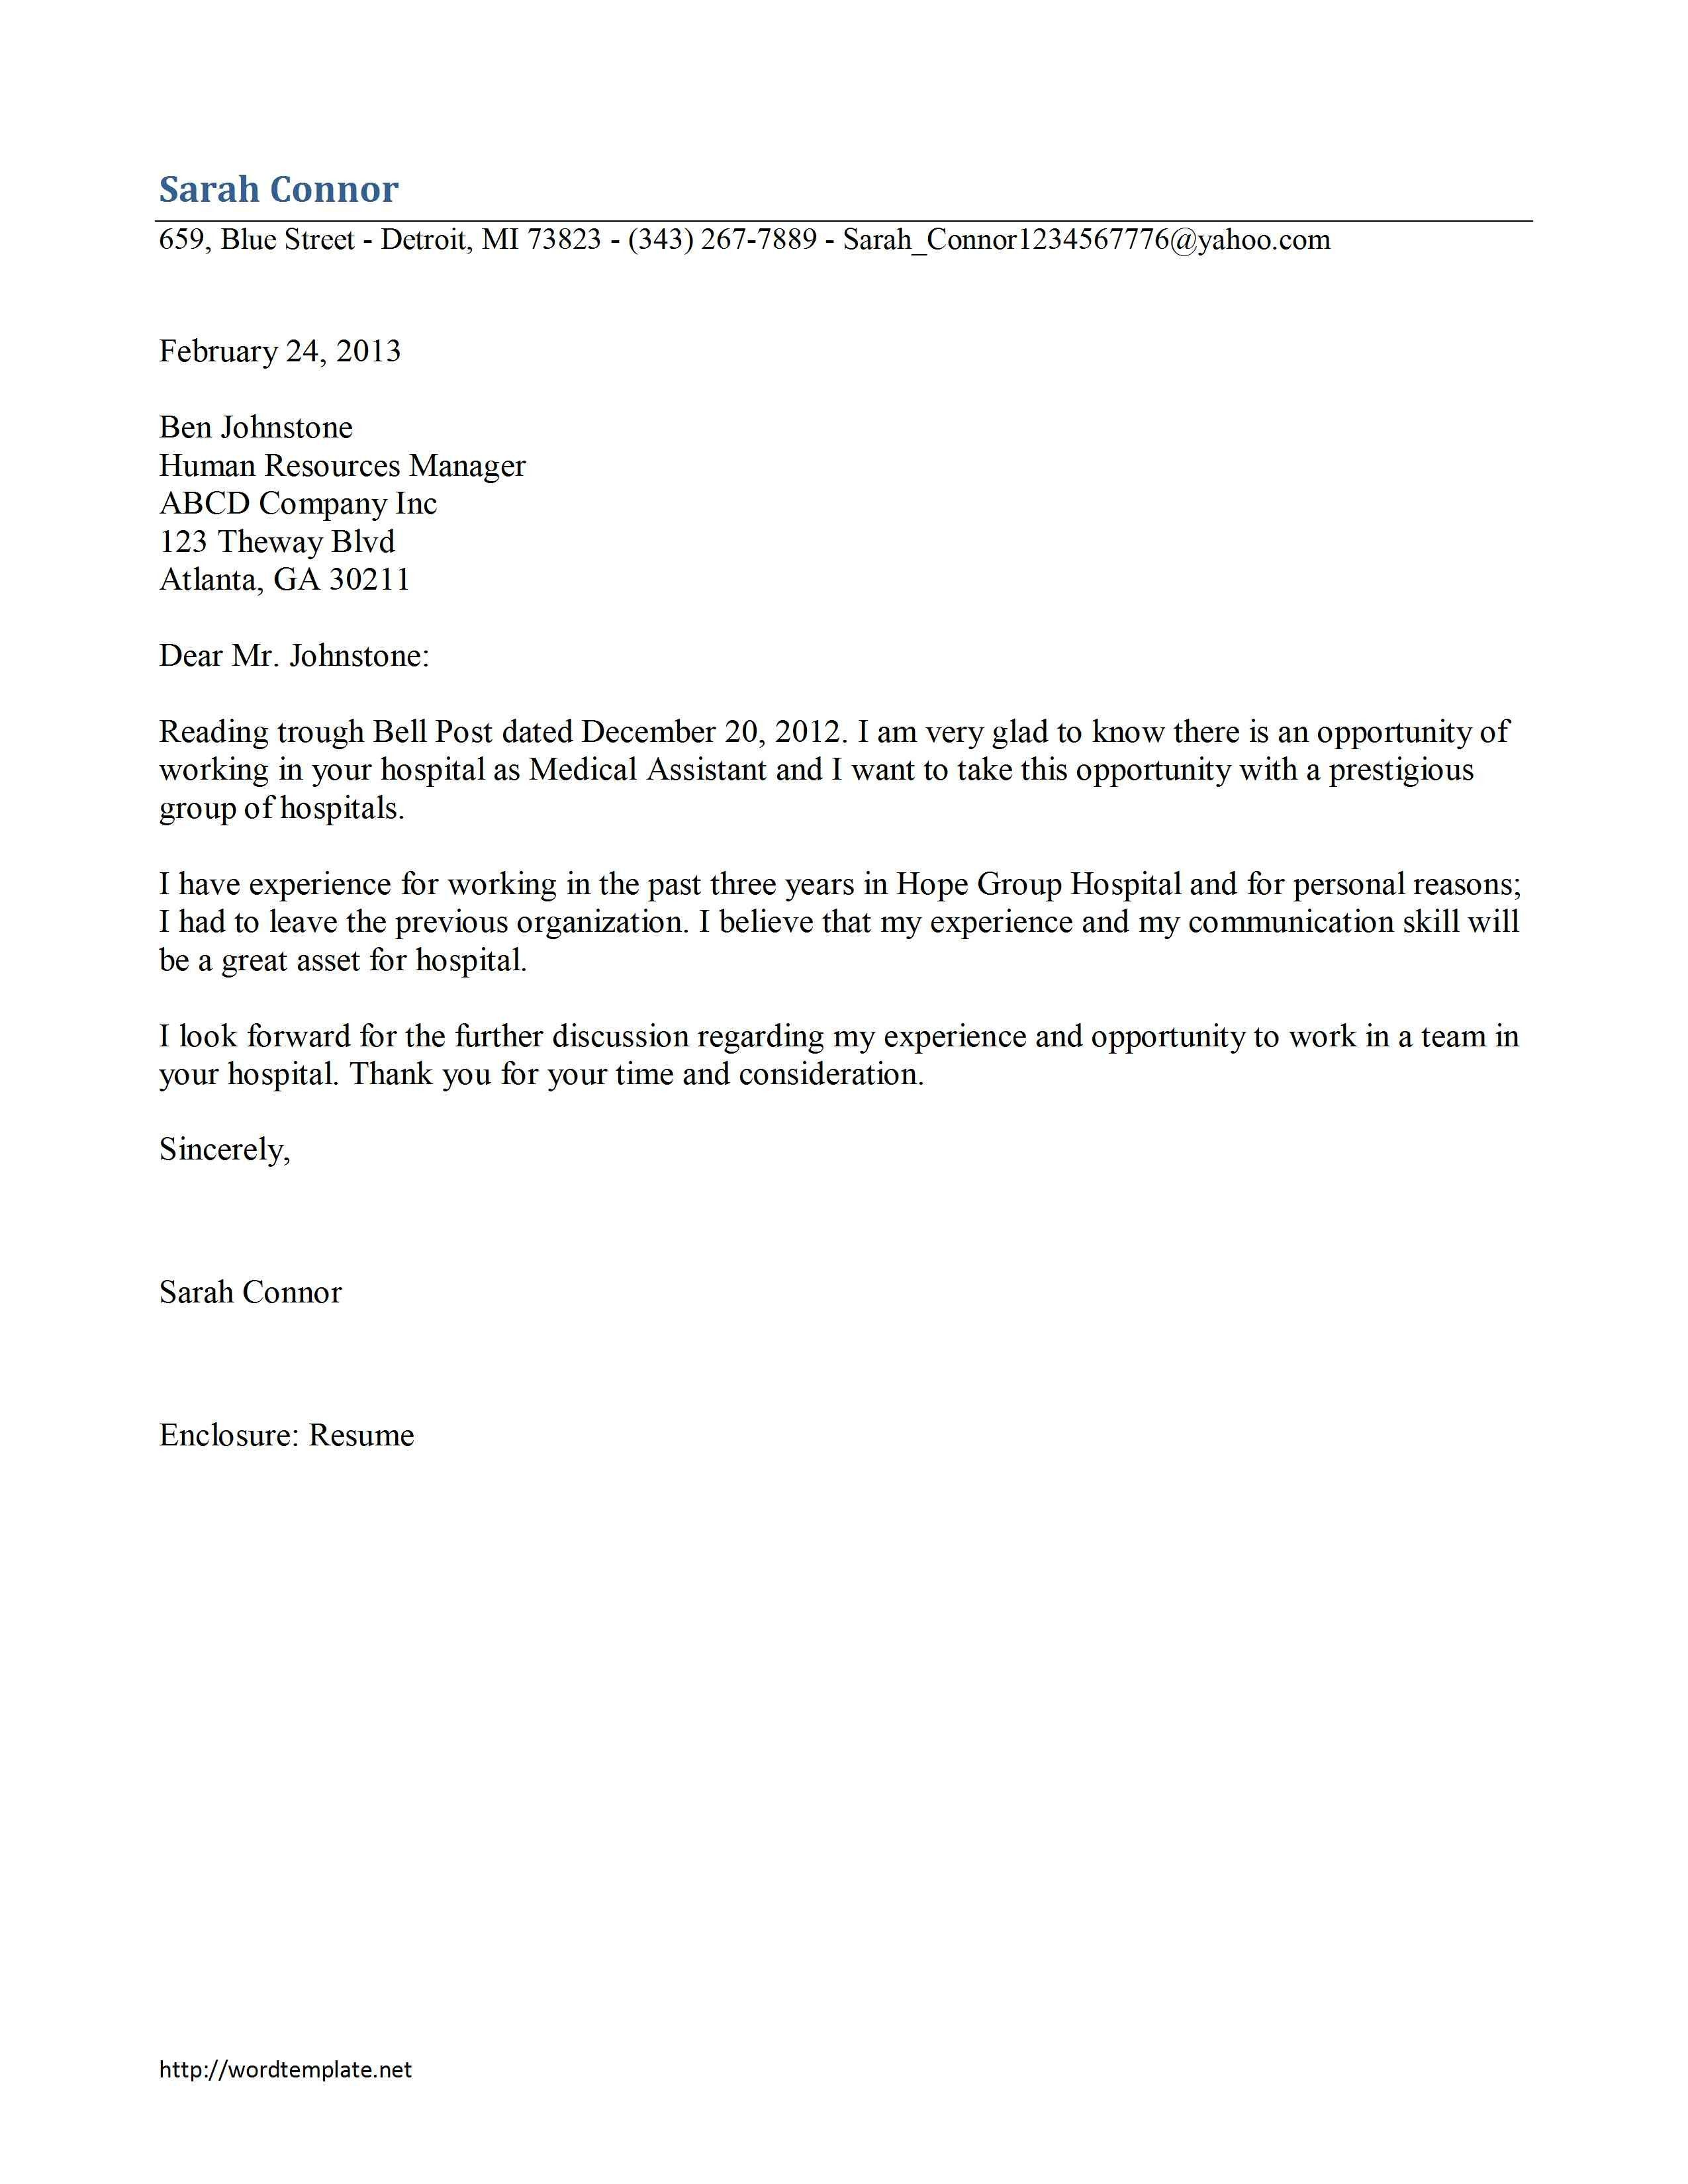 Cover Letter Template Medical Assistant 16 Moments That Basically Sum Up You Medical Assistant Cover Letter Cover Letter For Resume Cover Letter Template Free